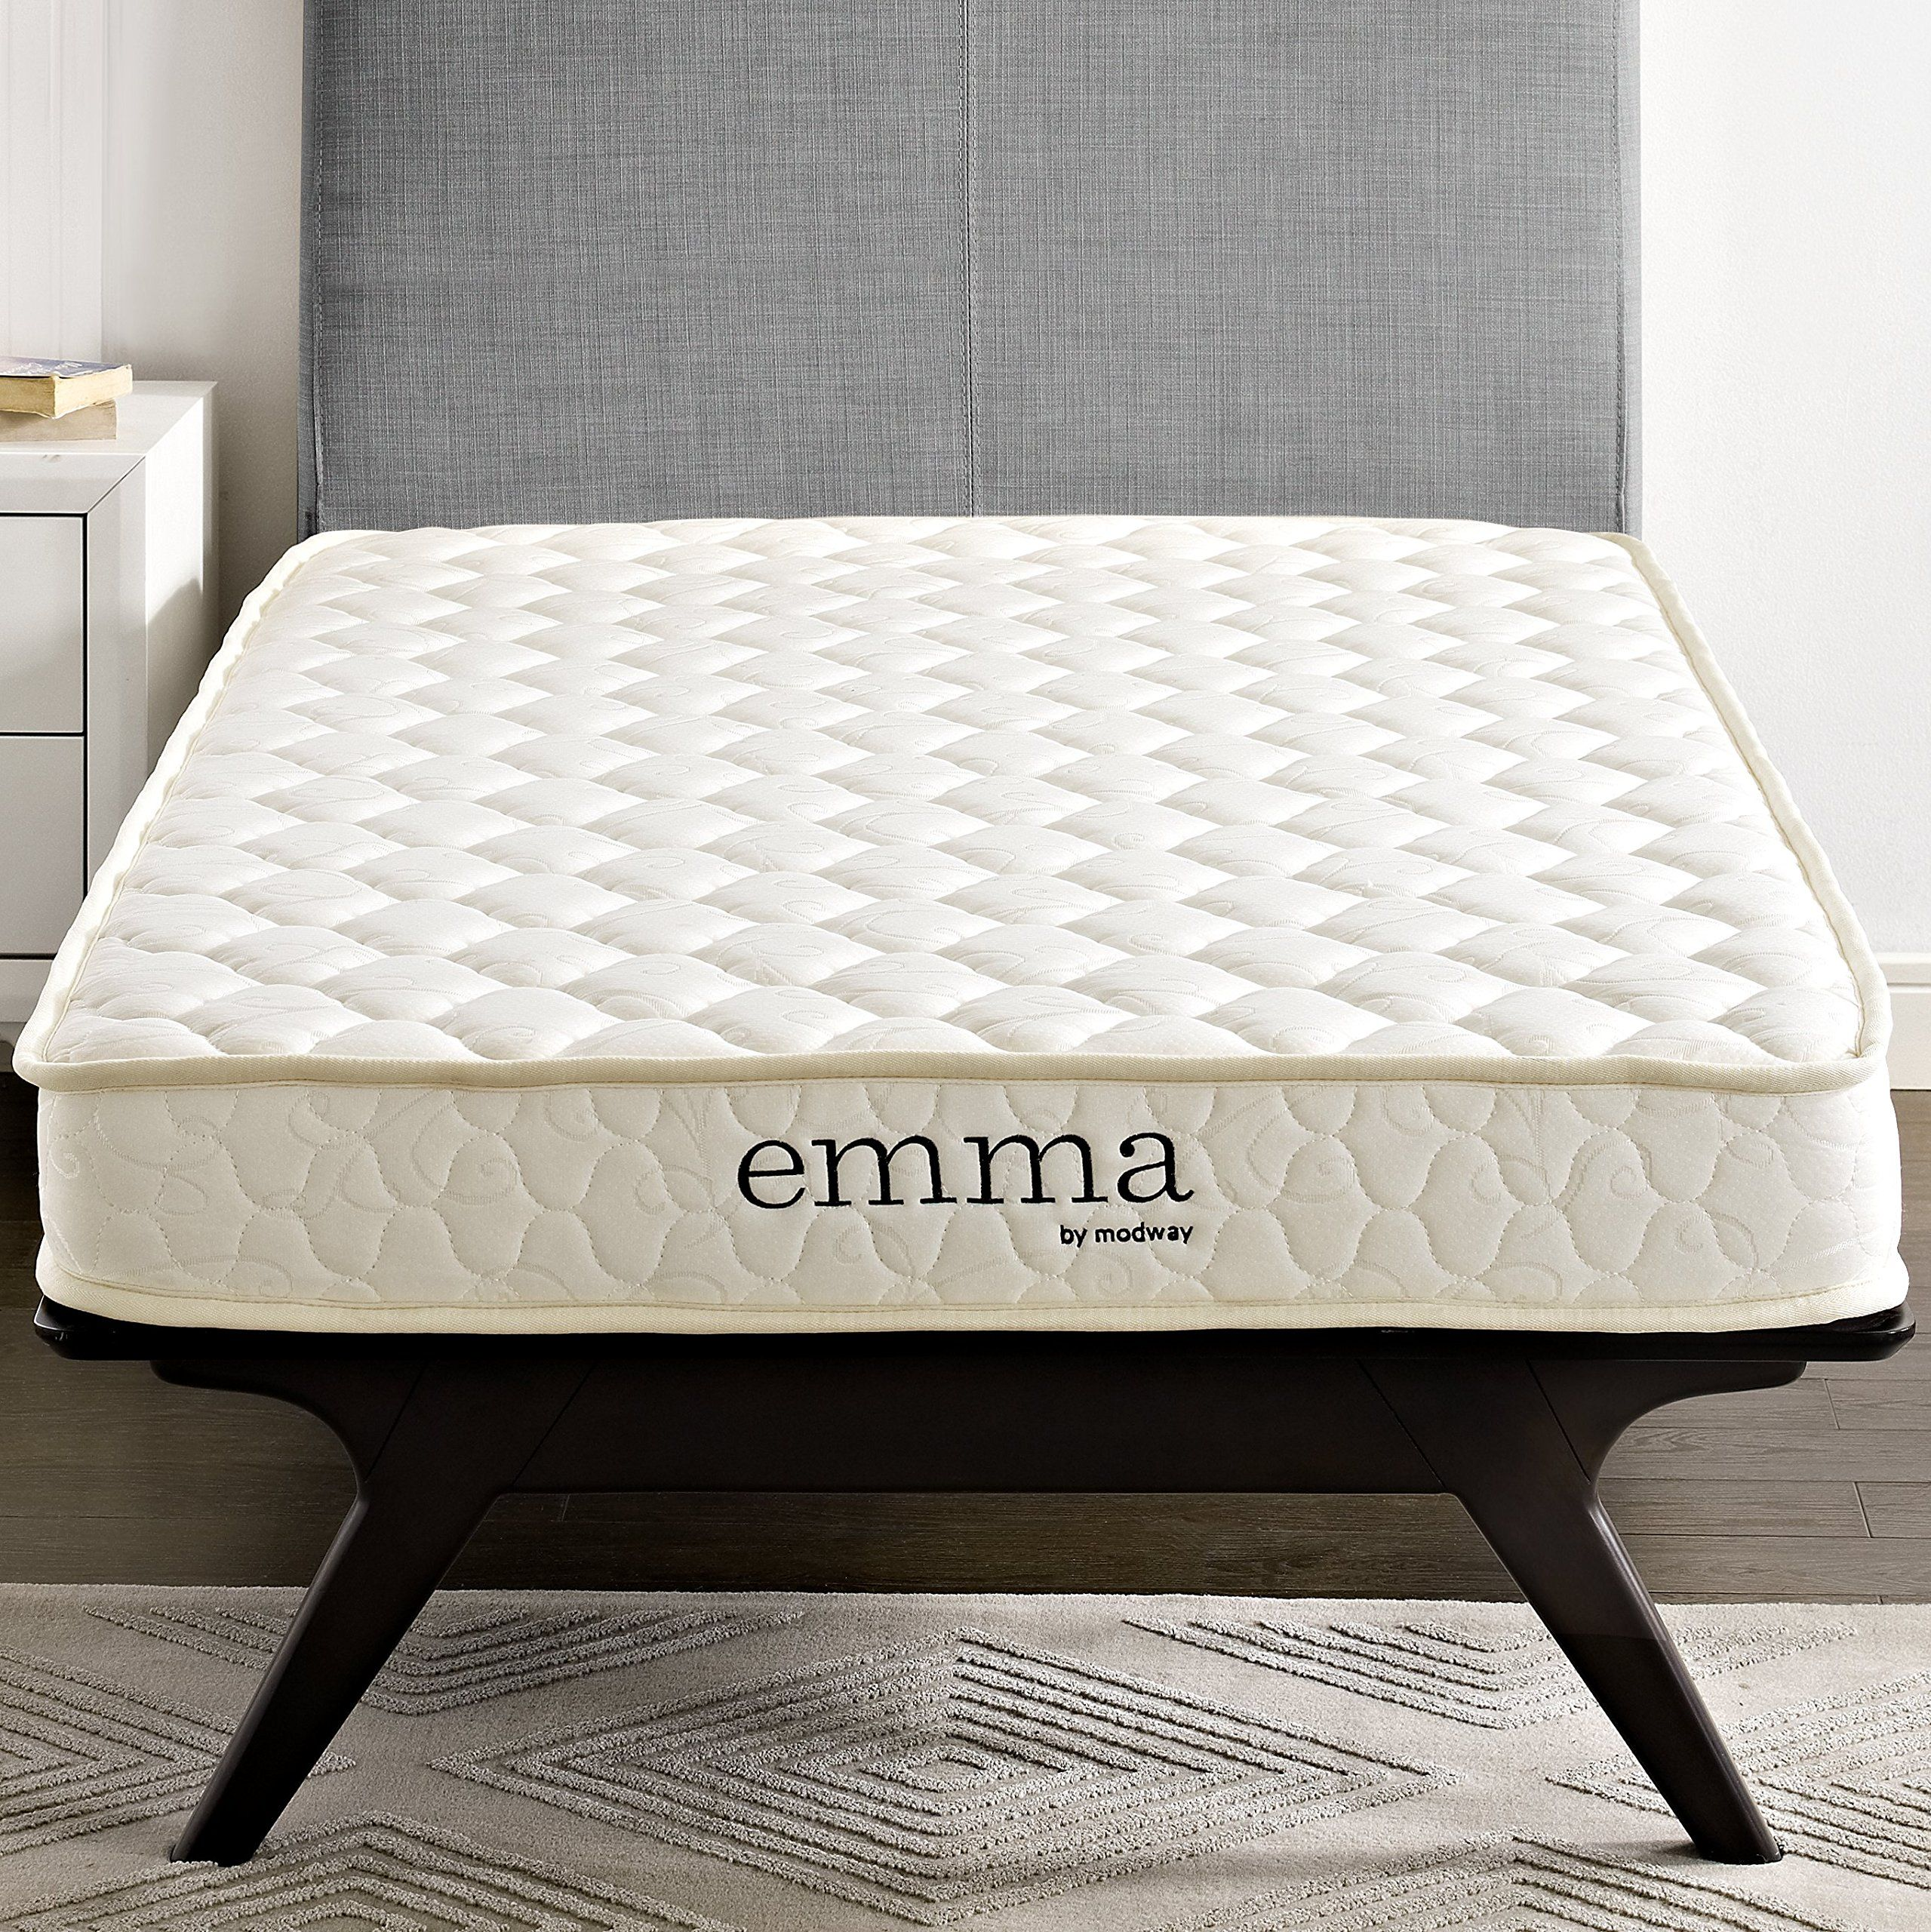 Modway Emma 6a Twin Foam Mattress Firm Mattress For Guest Or Kid Room 10year Warranty For More Information Vi Twin Foam Mattress Firm Mattress Mattress